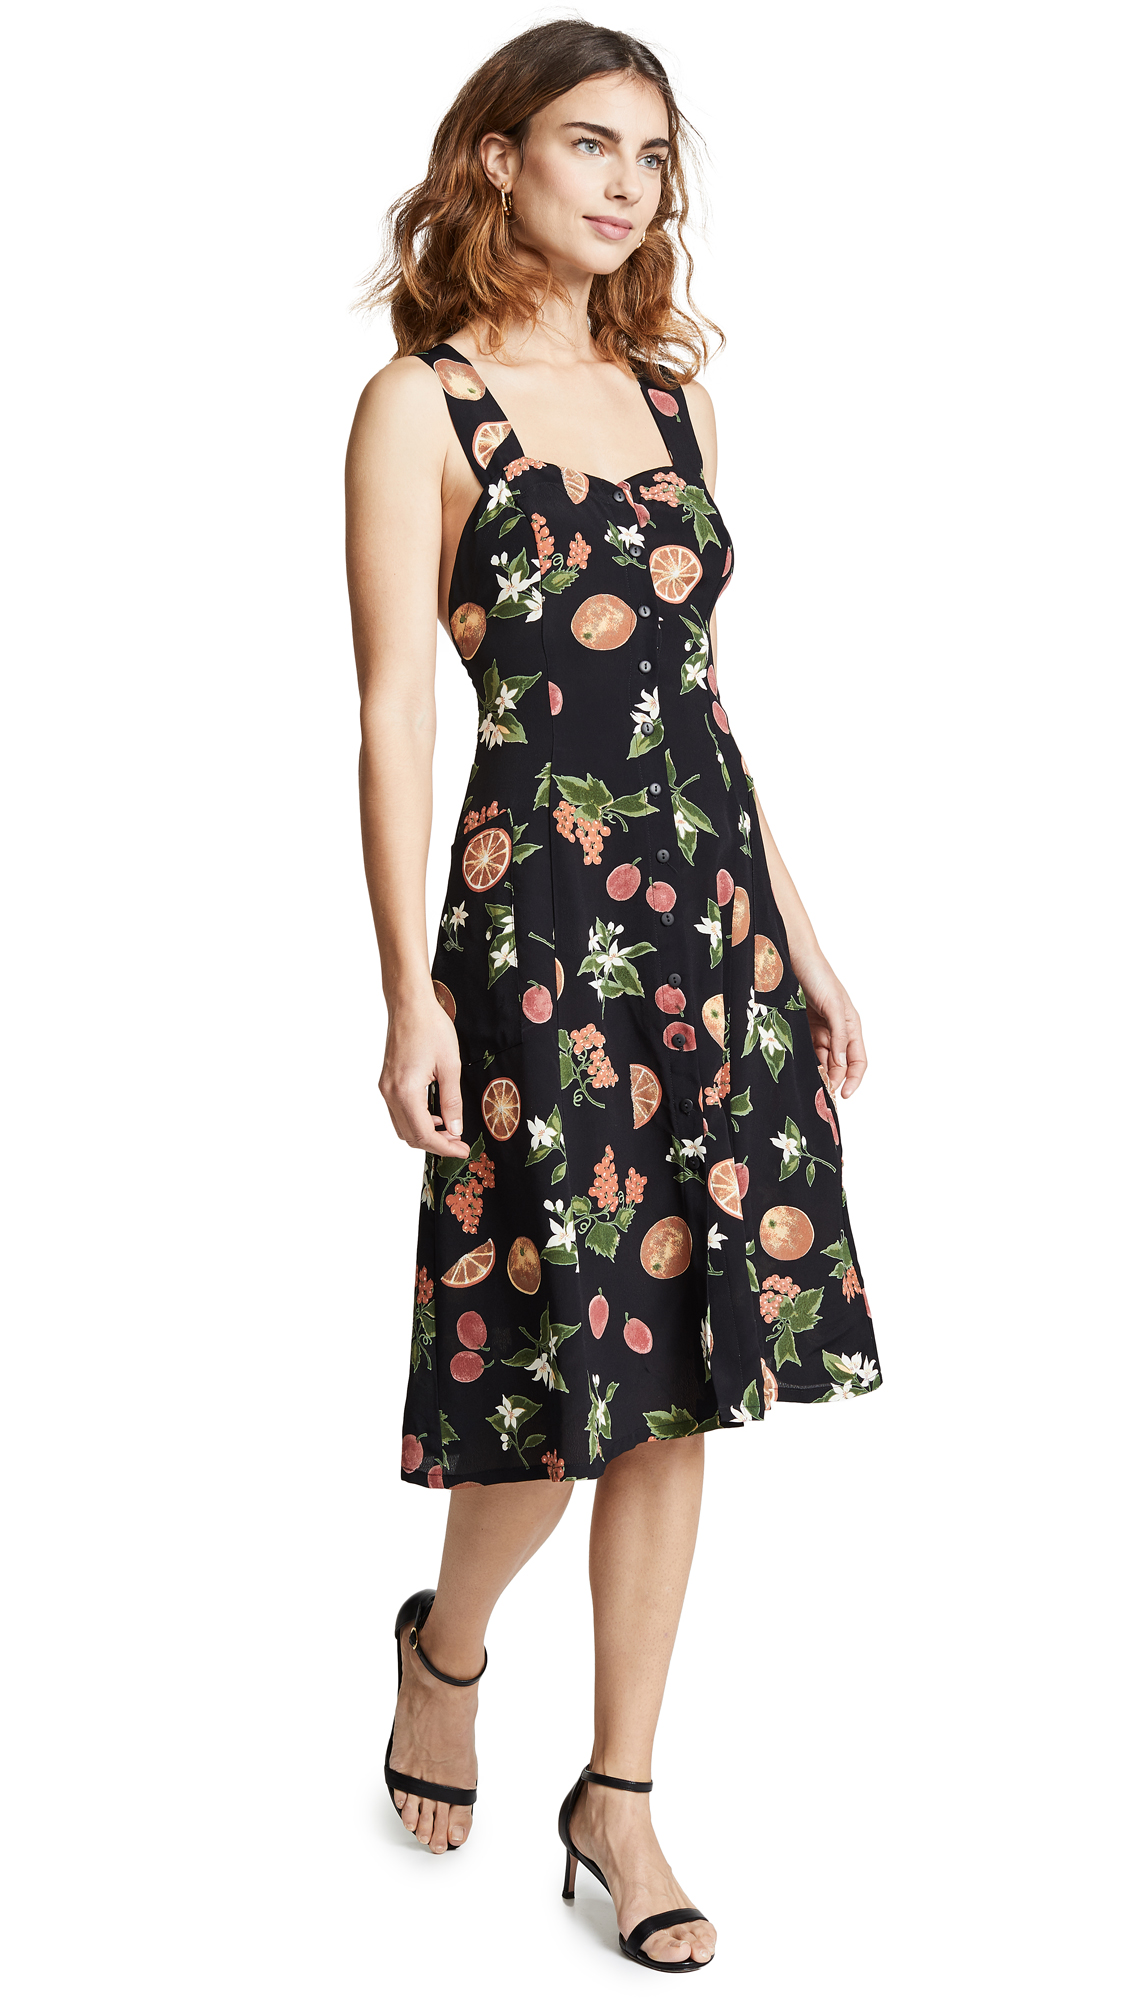 RUKEN Babe Dress in Black Fruit